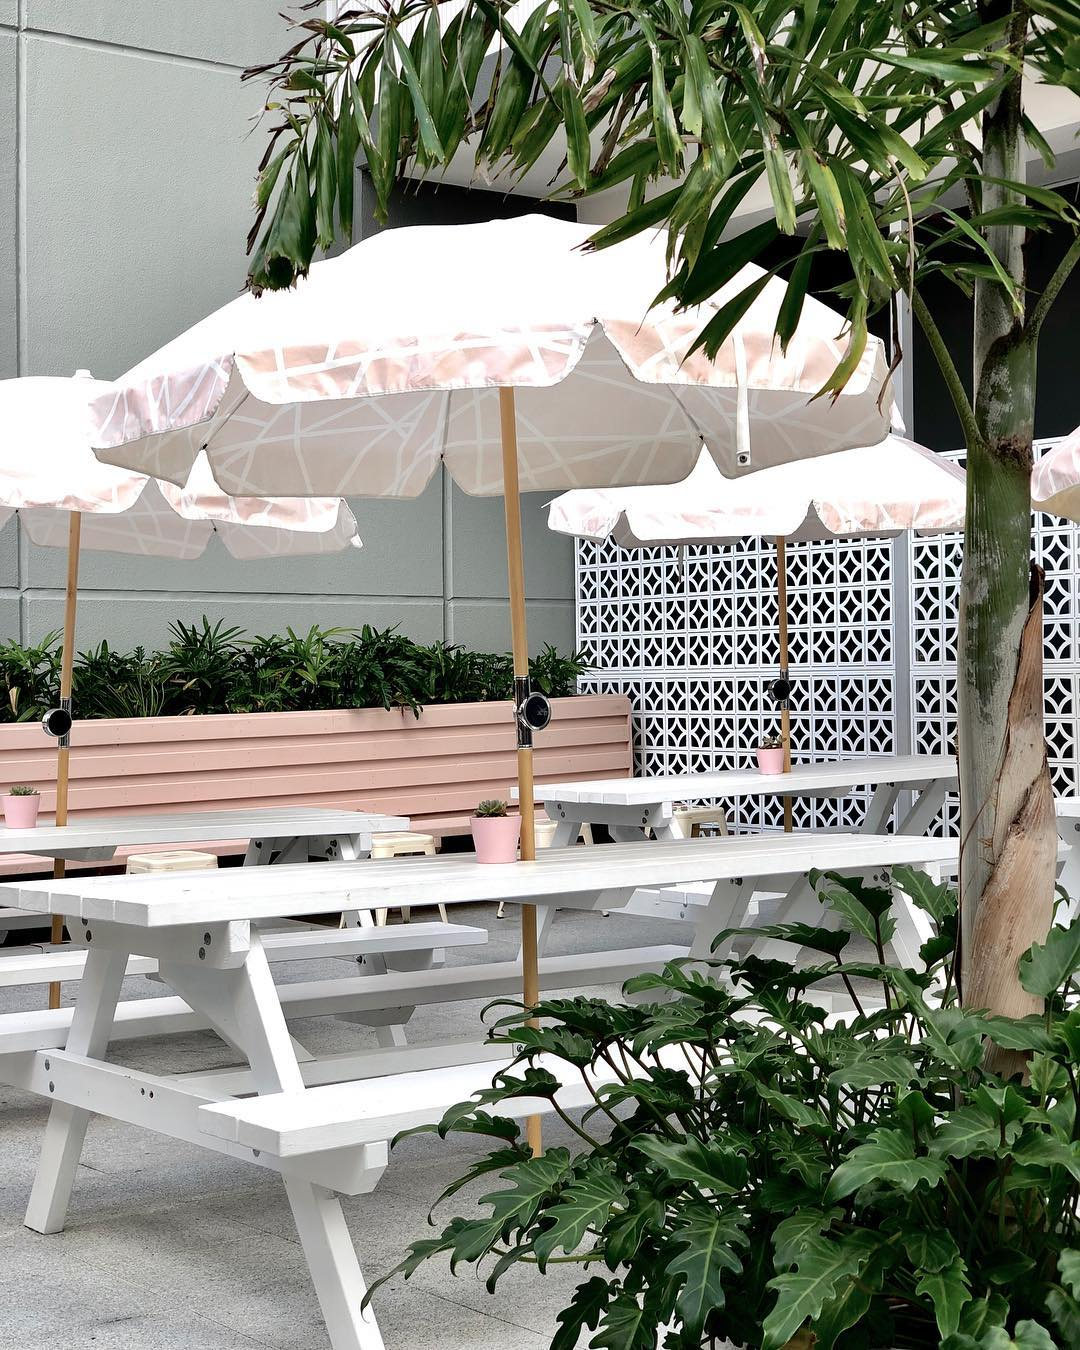 white picnic tables under pink striped umbrellas in a courtyard